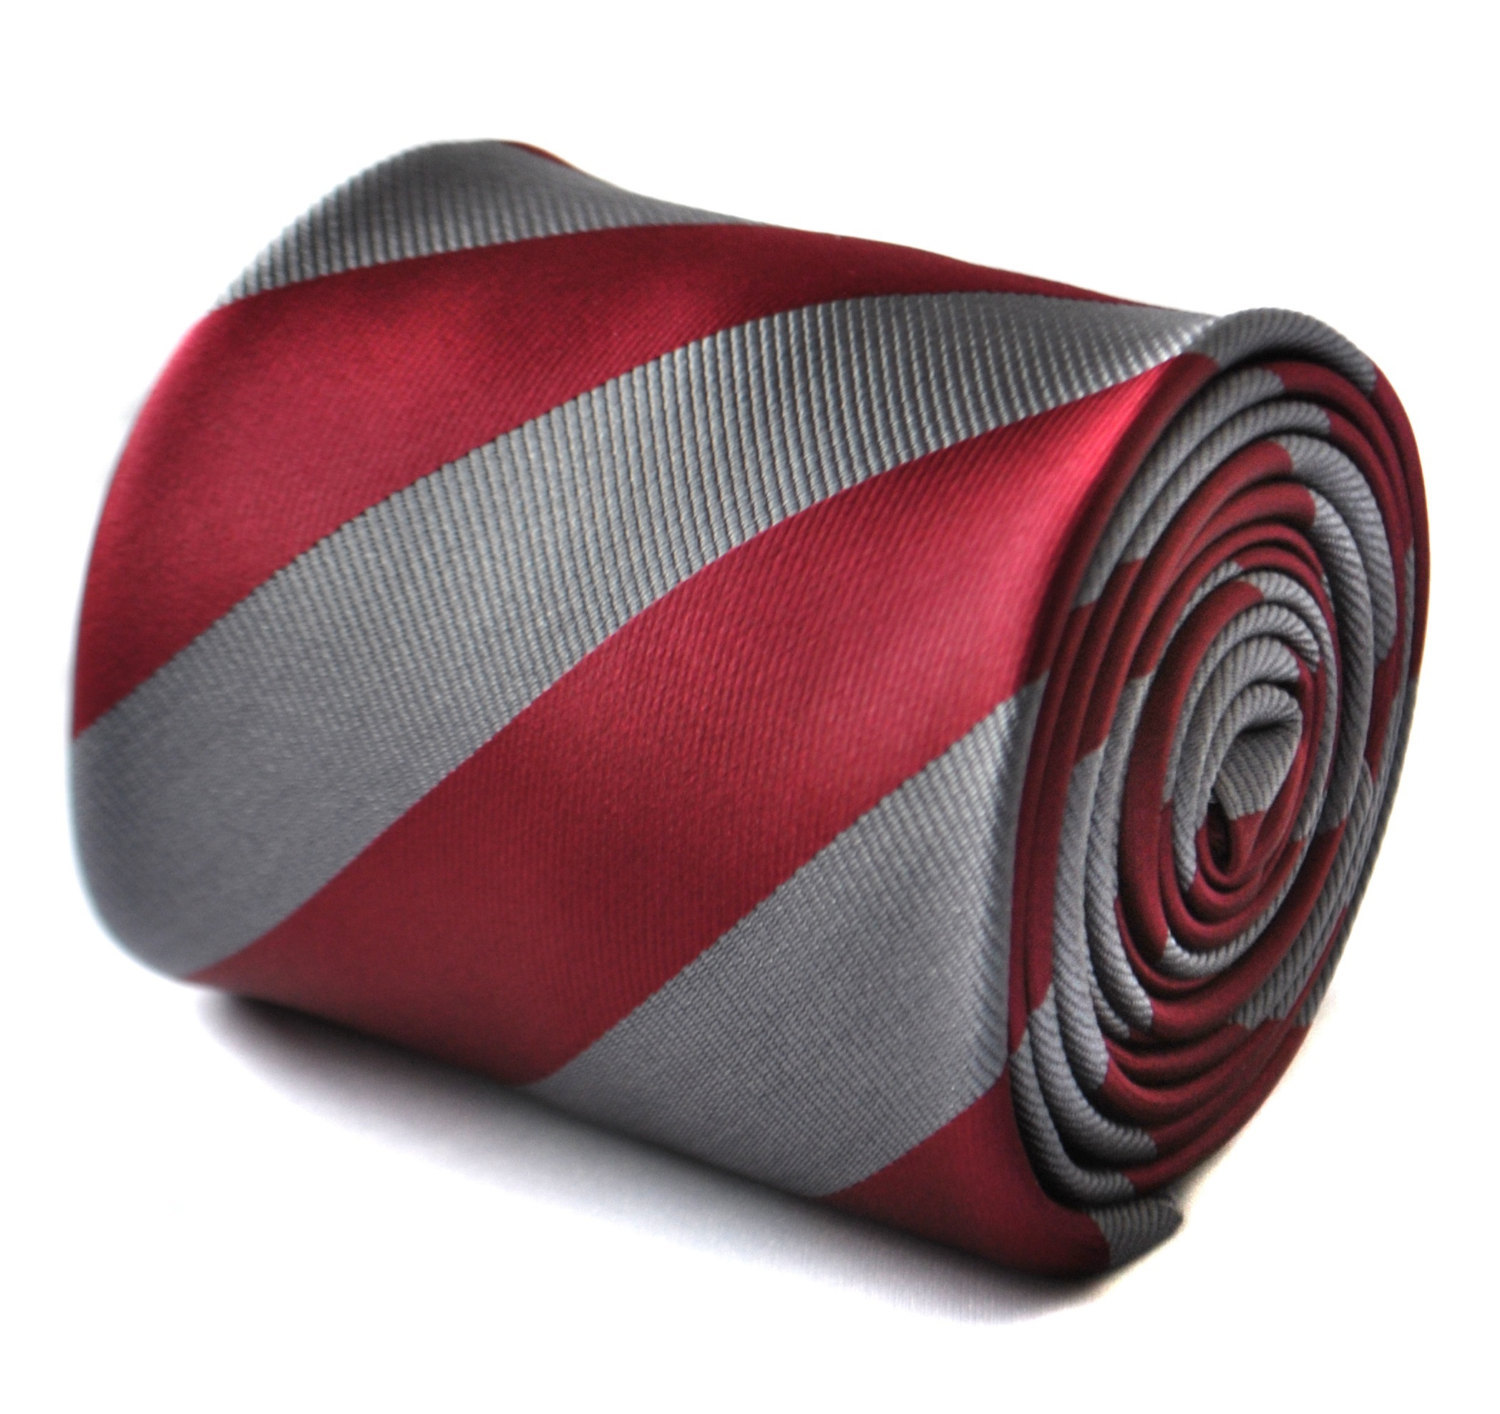 Maroon red and silver barber striped tie with signature floral design to the rea